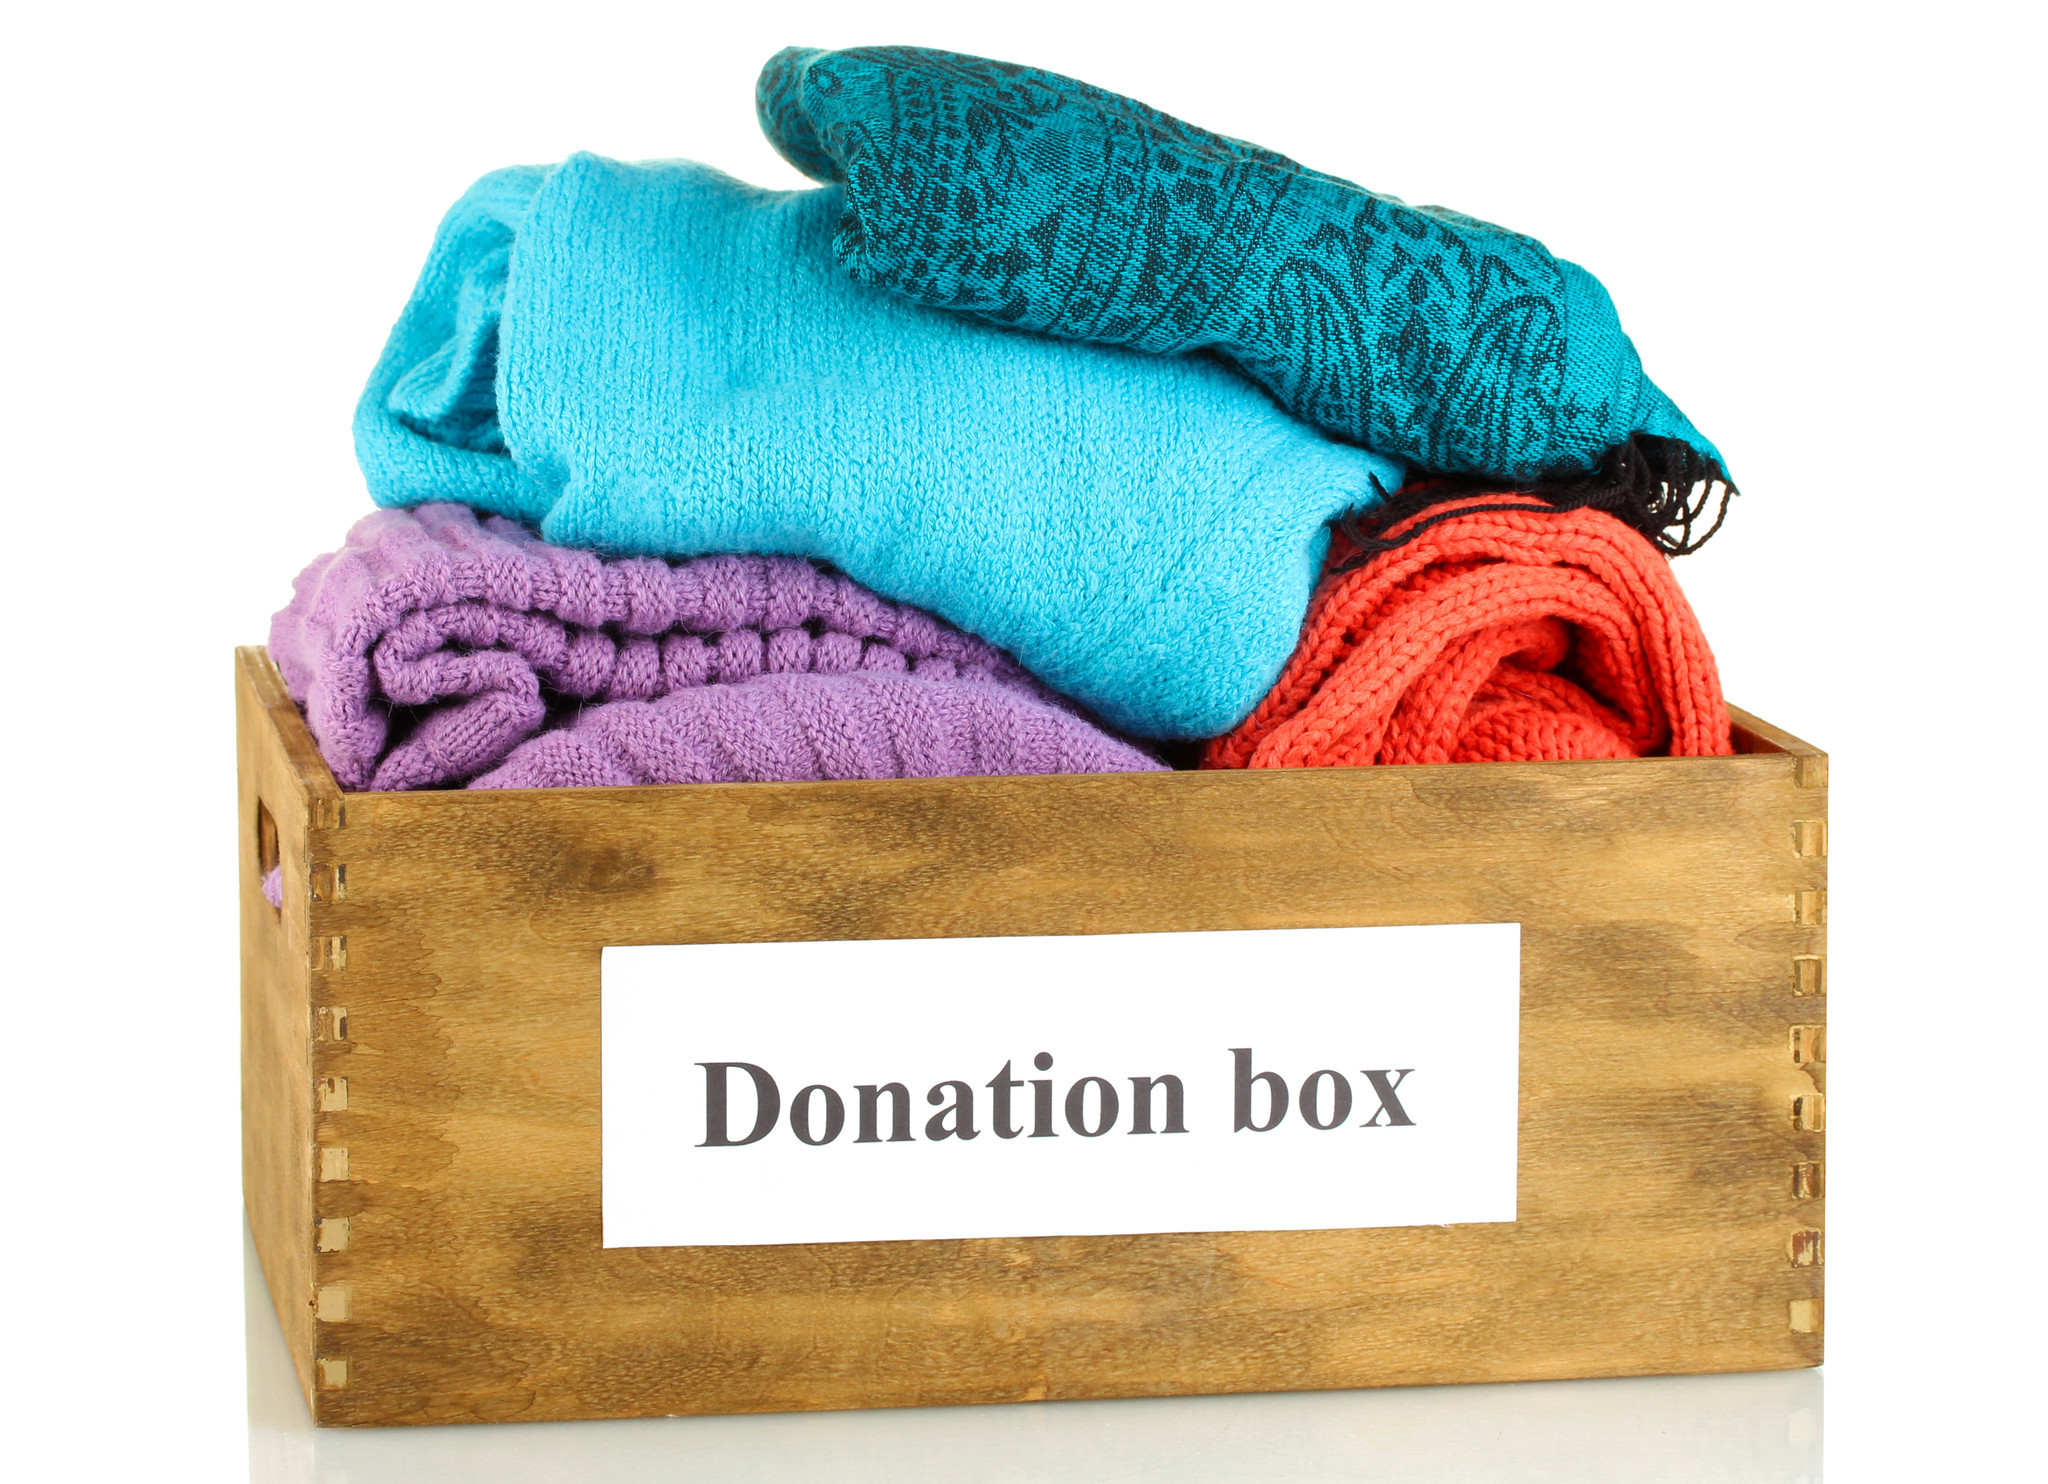 Where To Donate Coats, Warm Clothing - Hartford Courant